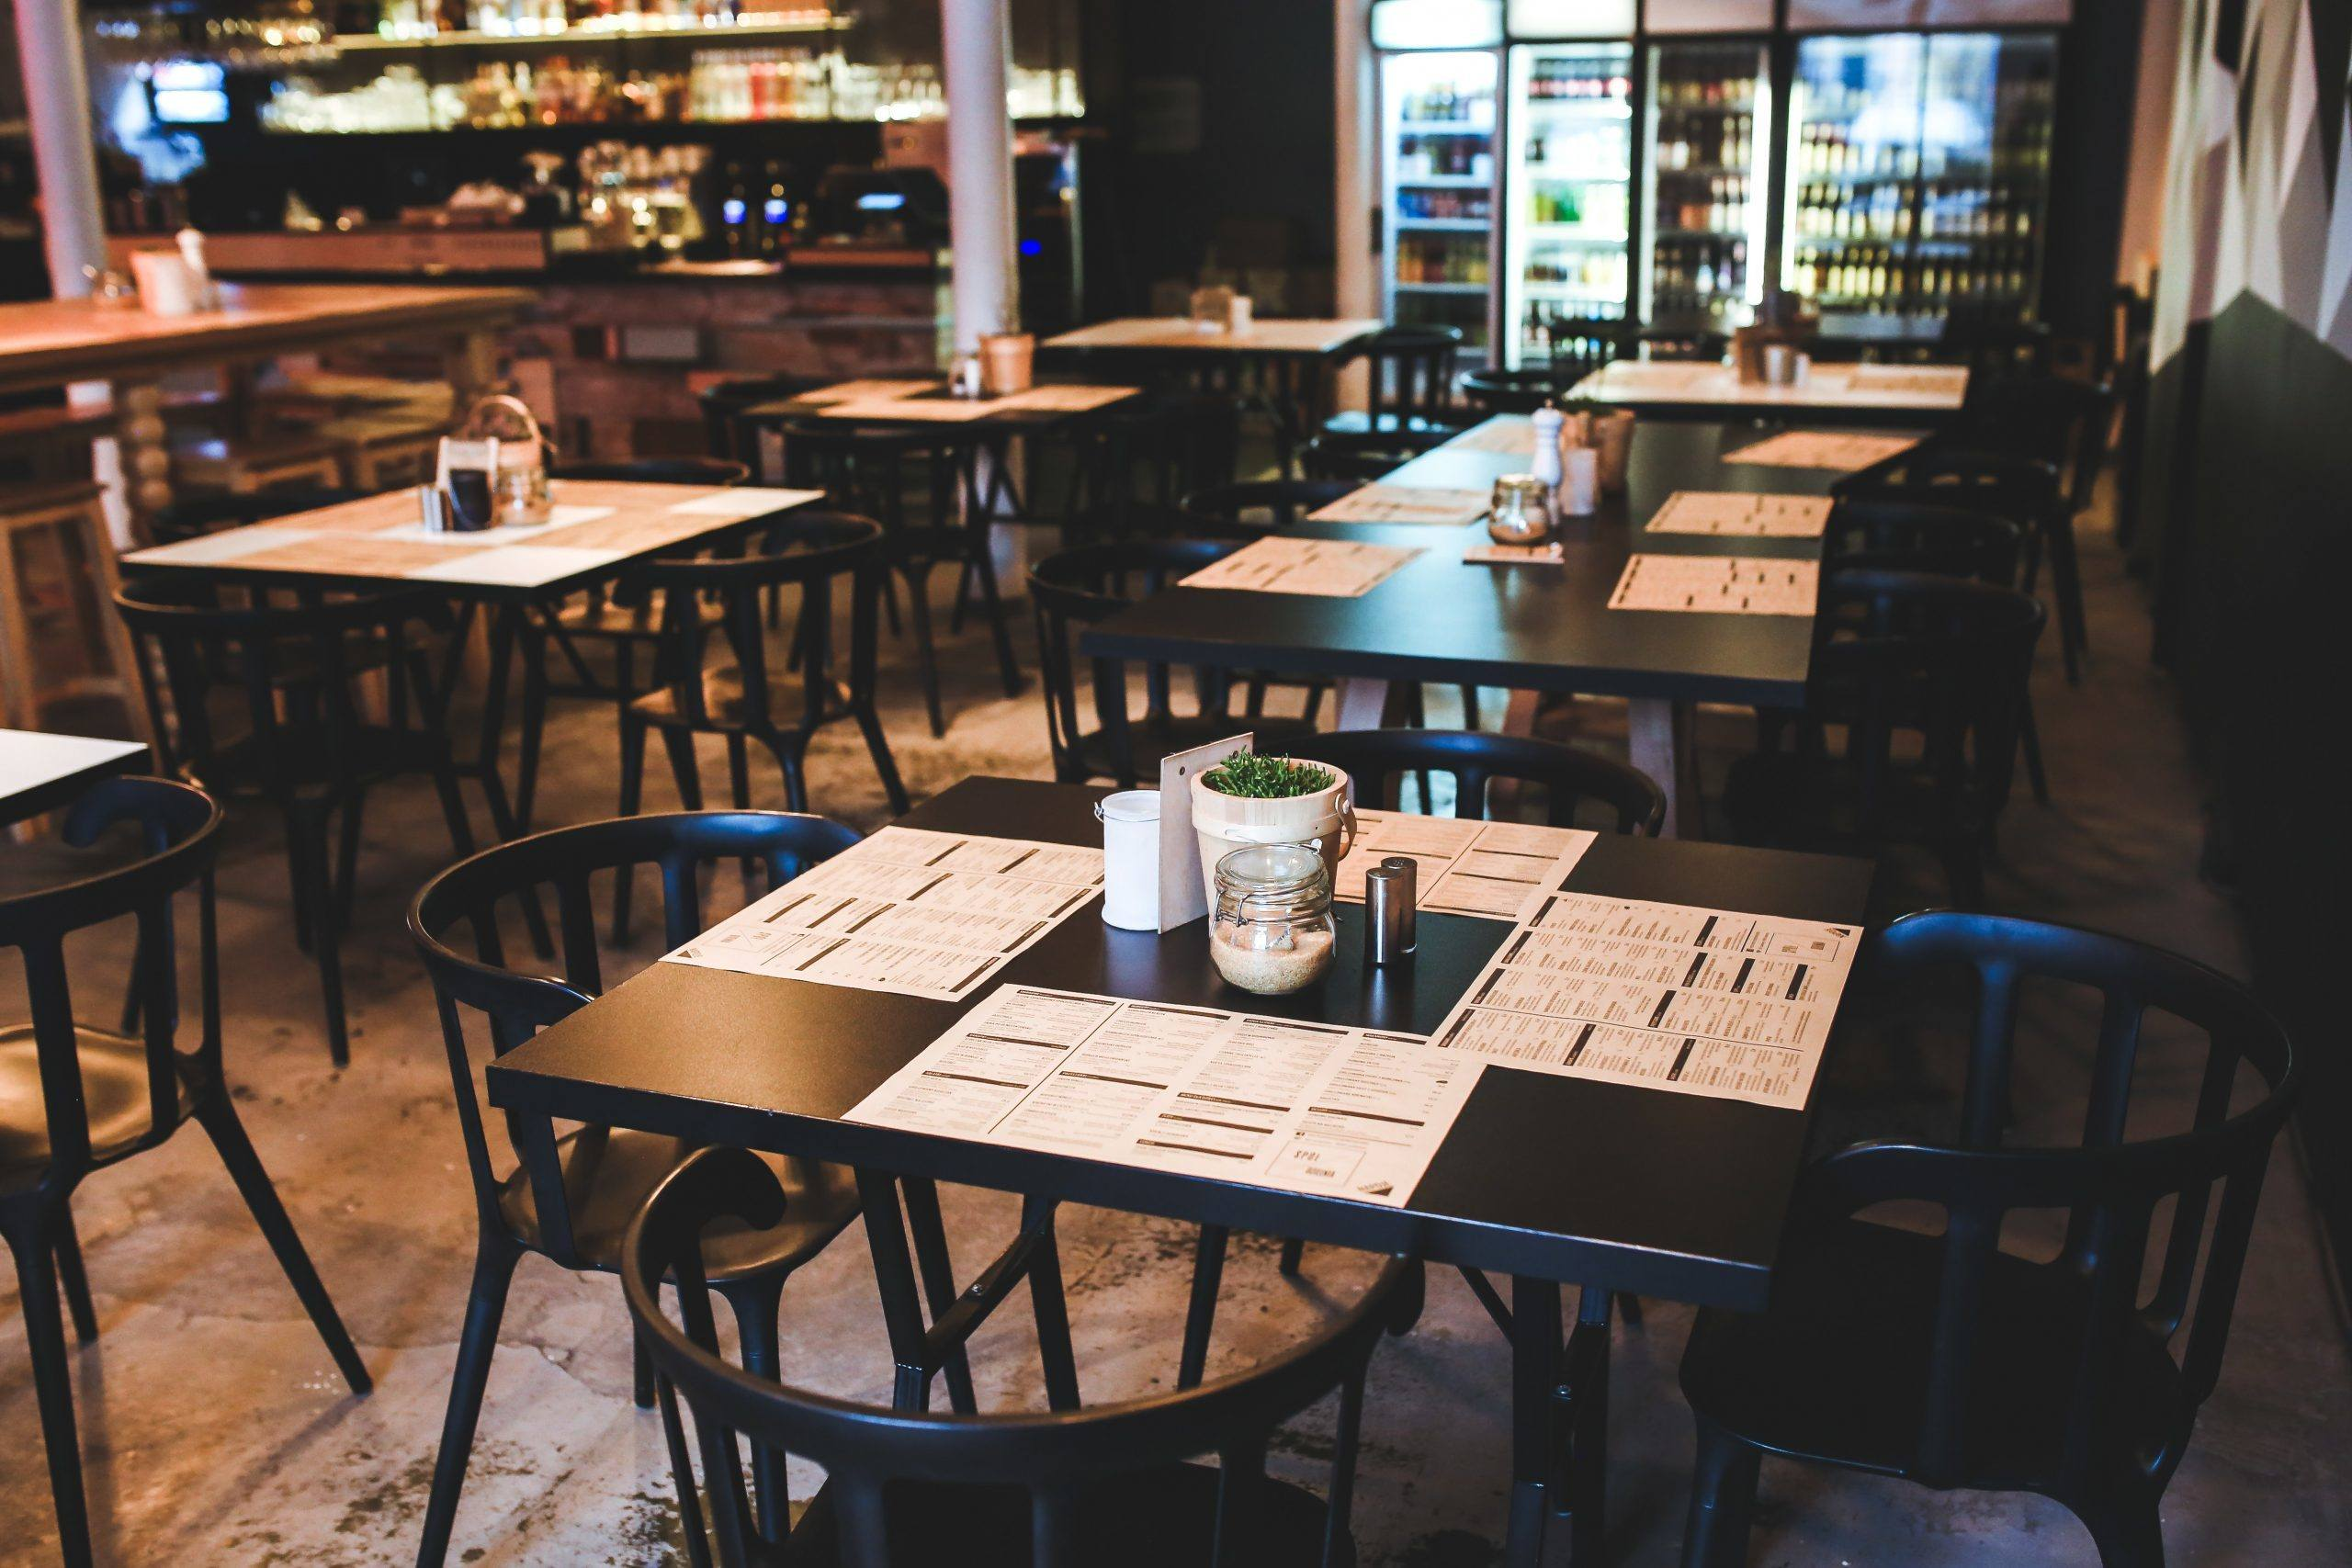 Restaurant managers may need to handle some marketing duties